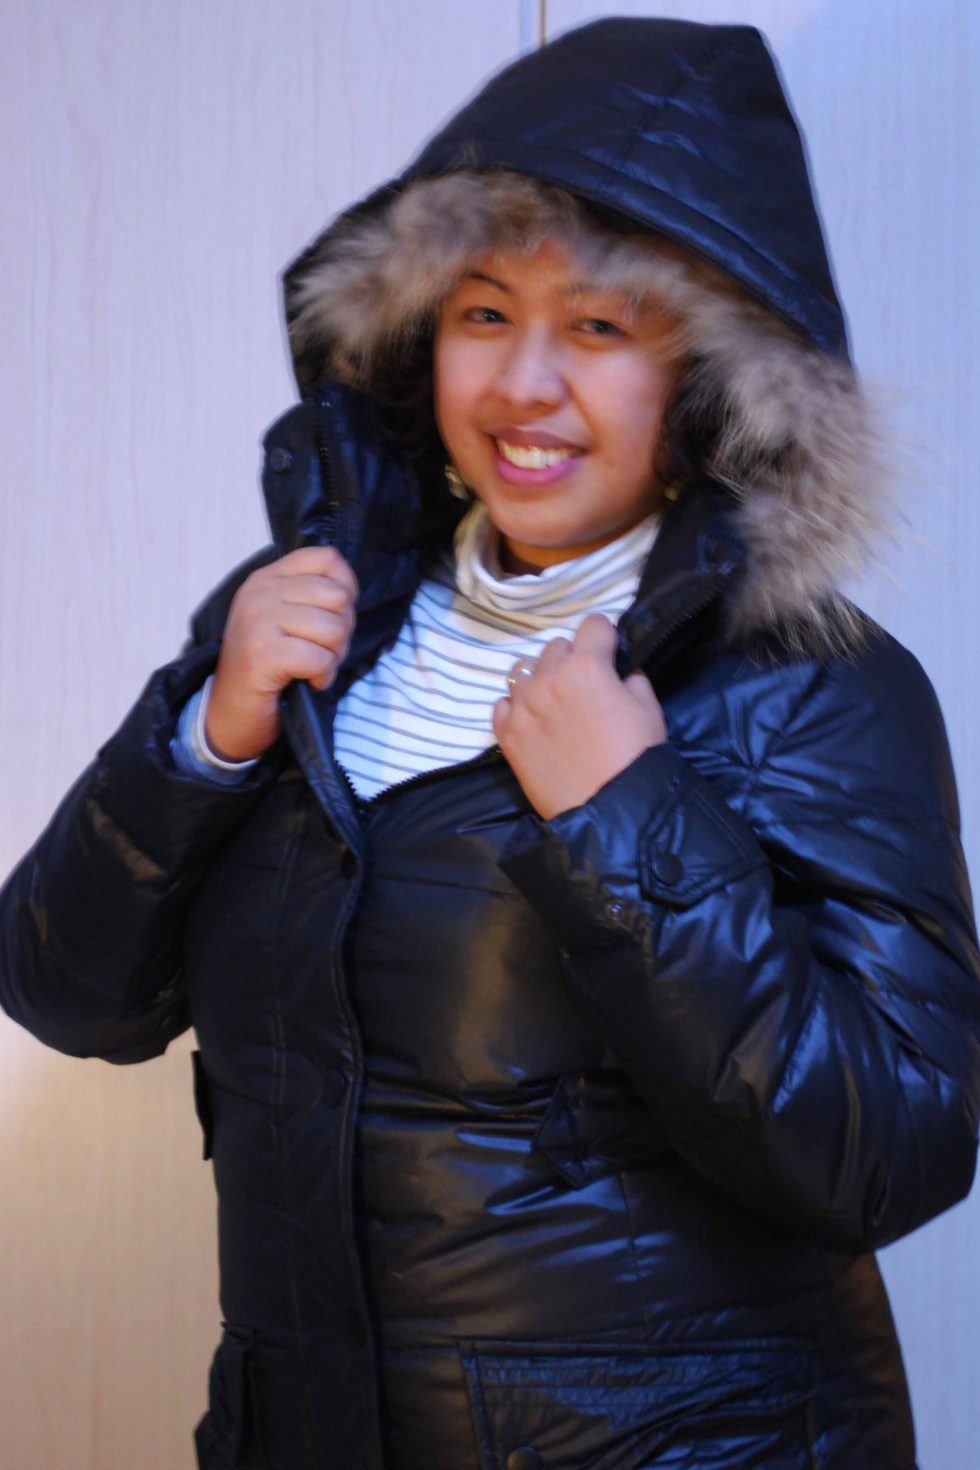 black bubble jacket with rabbit fur on the hood